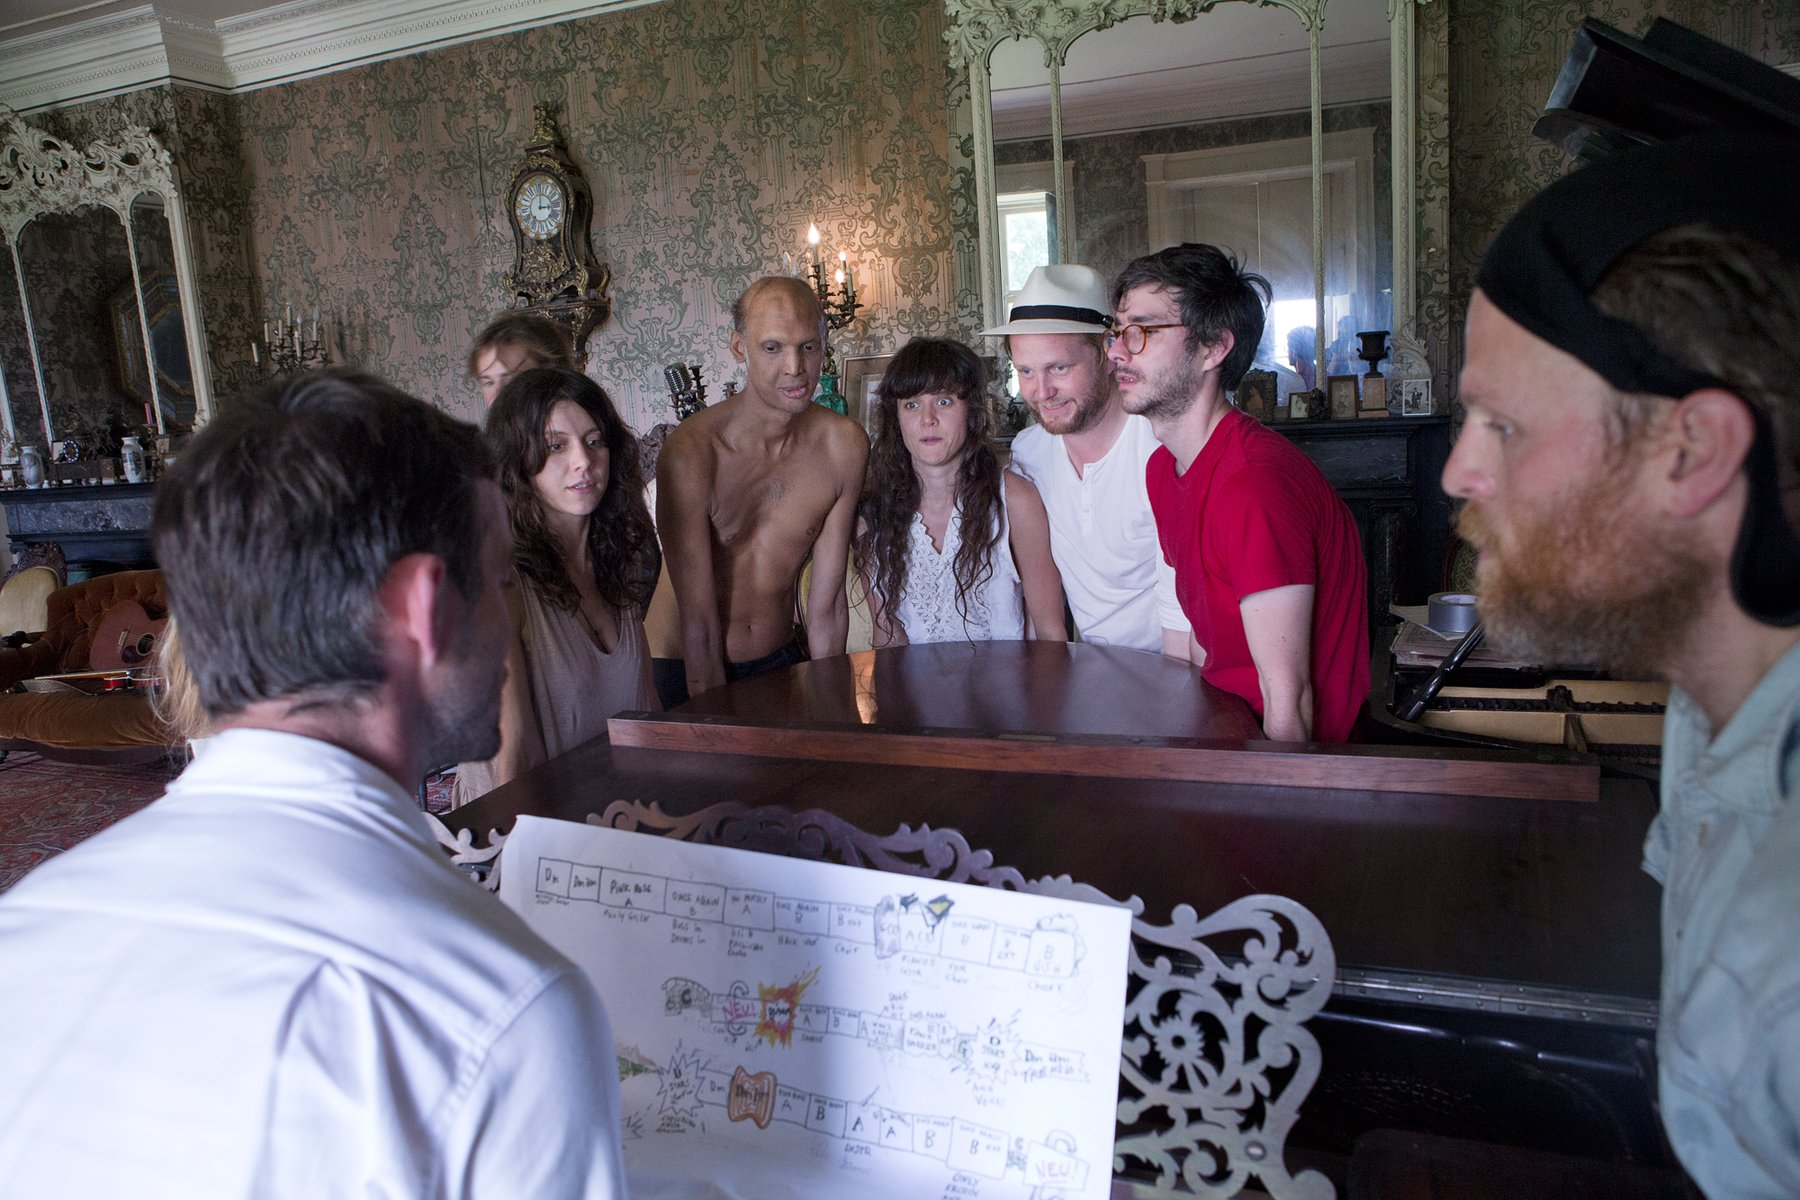 Several people stand around a piano in an elaborately decorated room, Kjartansson